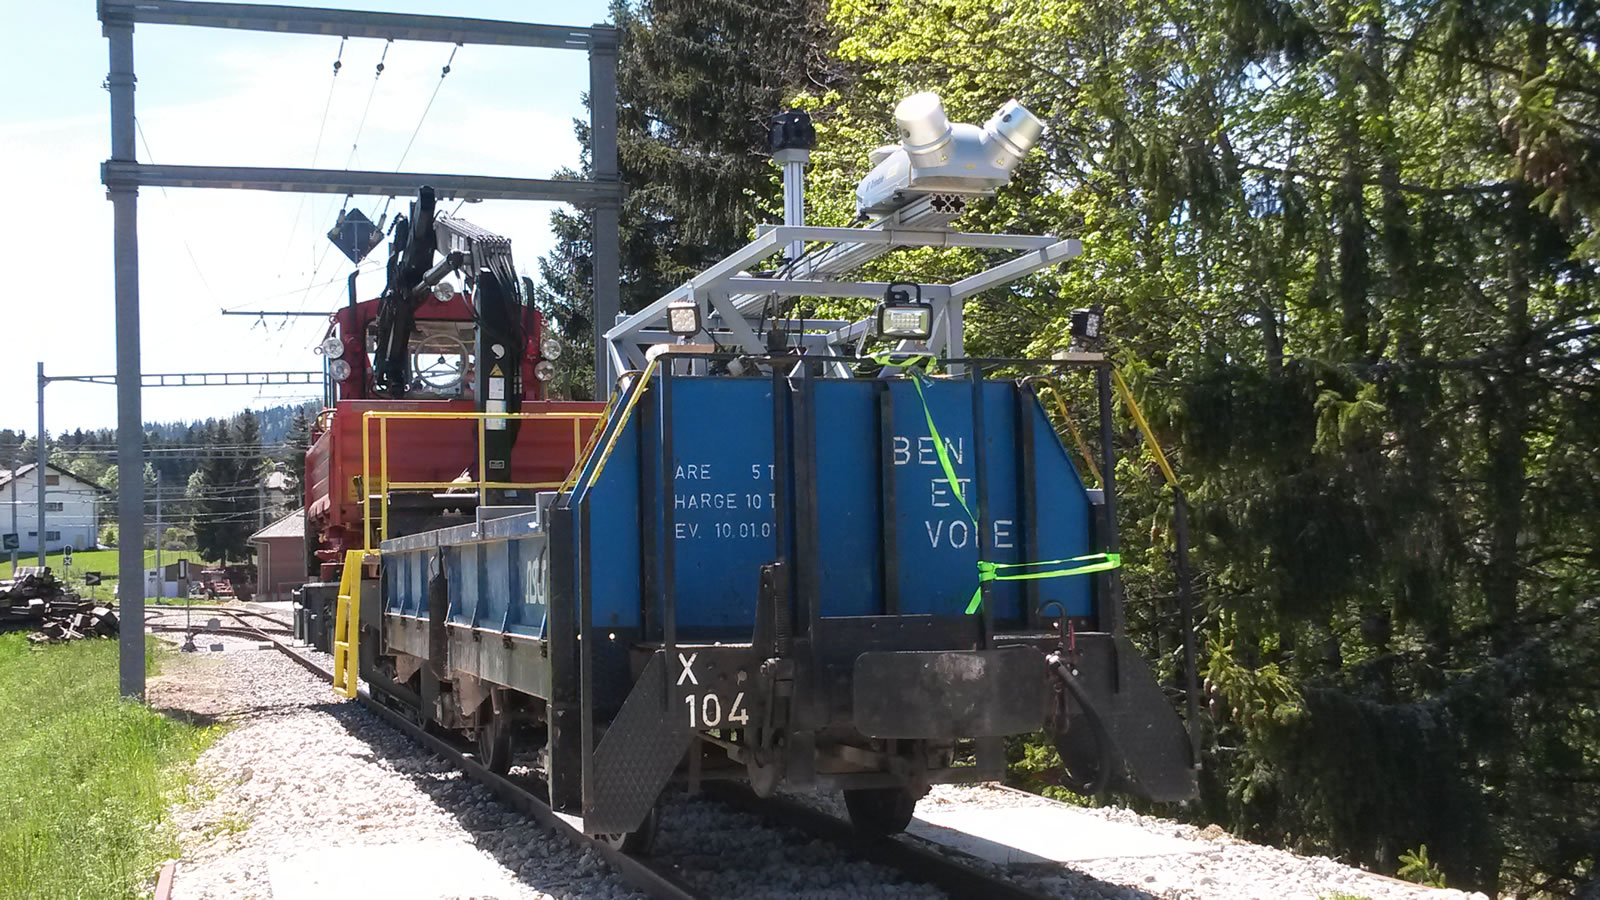 Mobile Mapping d'une ligne ferroviaire